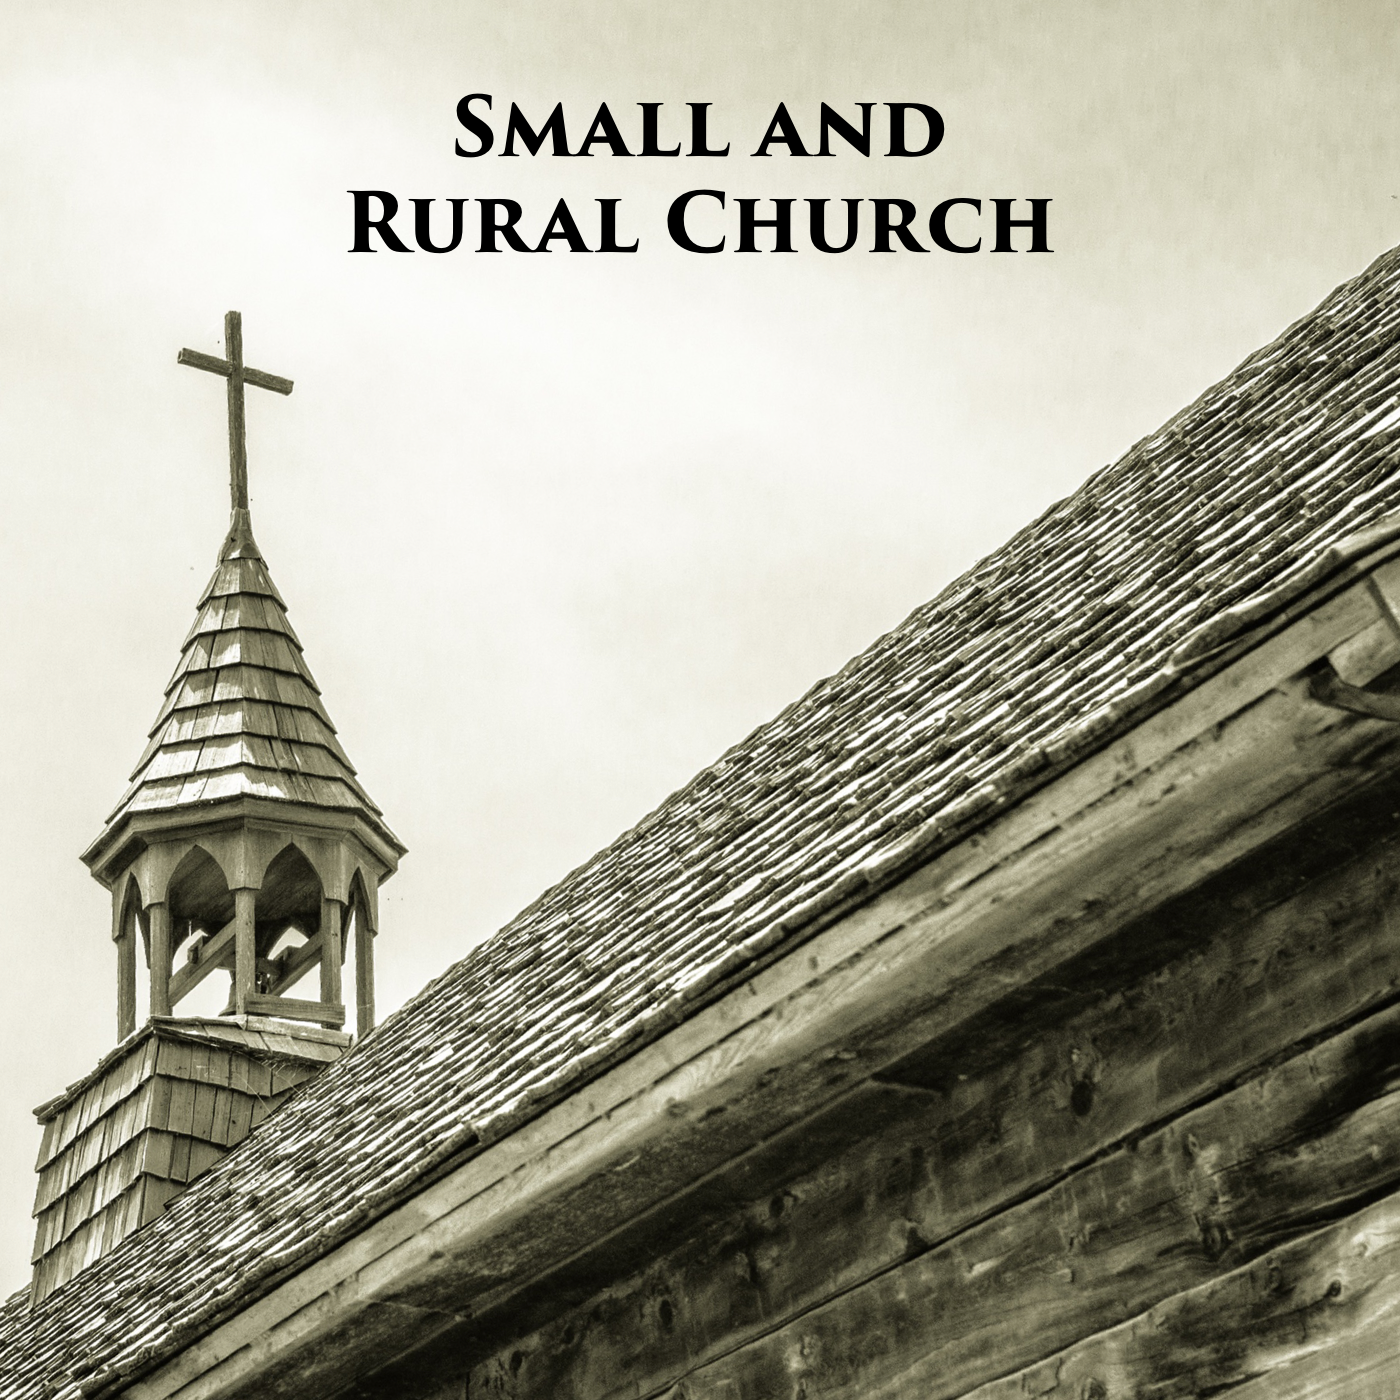 The Small and Rural Church – Pastor Susan Fox